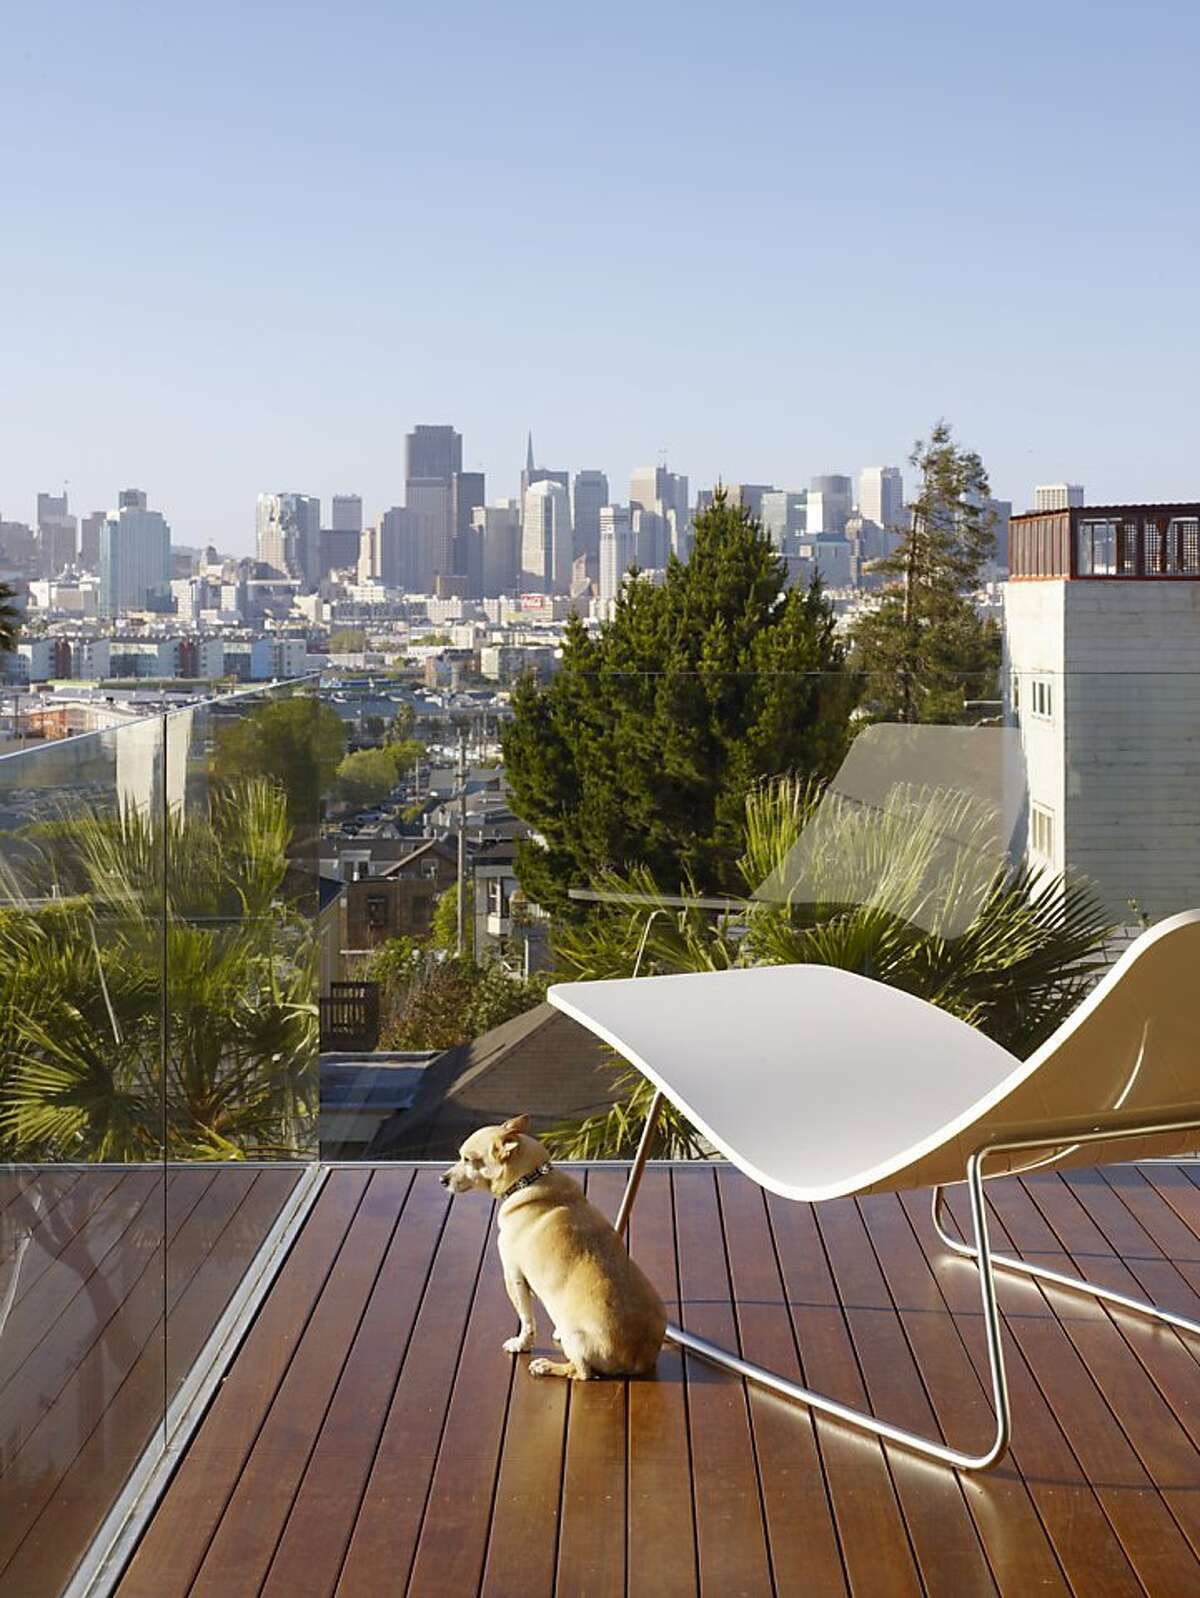 The kitchen balcony offers views of the San Francisco skyline.